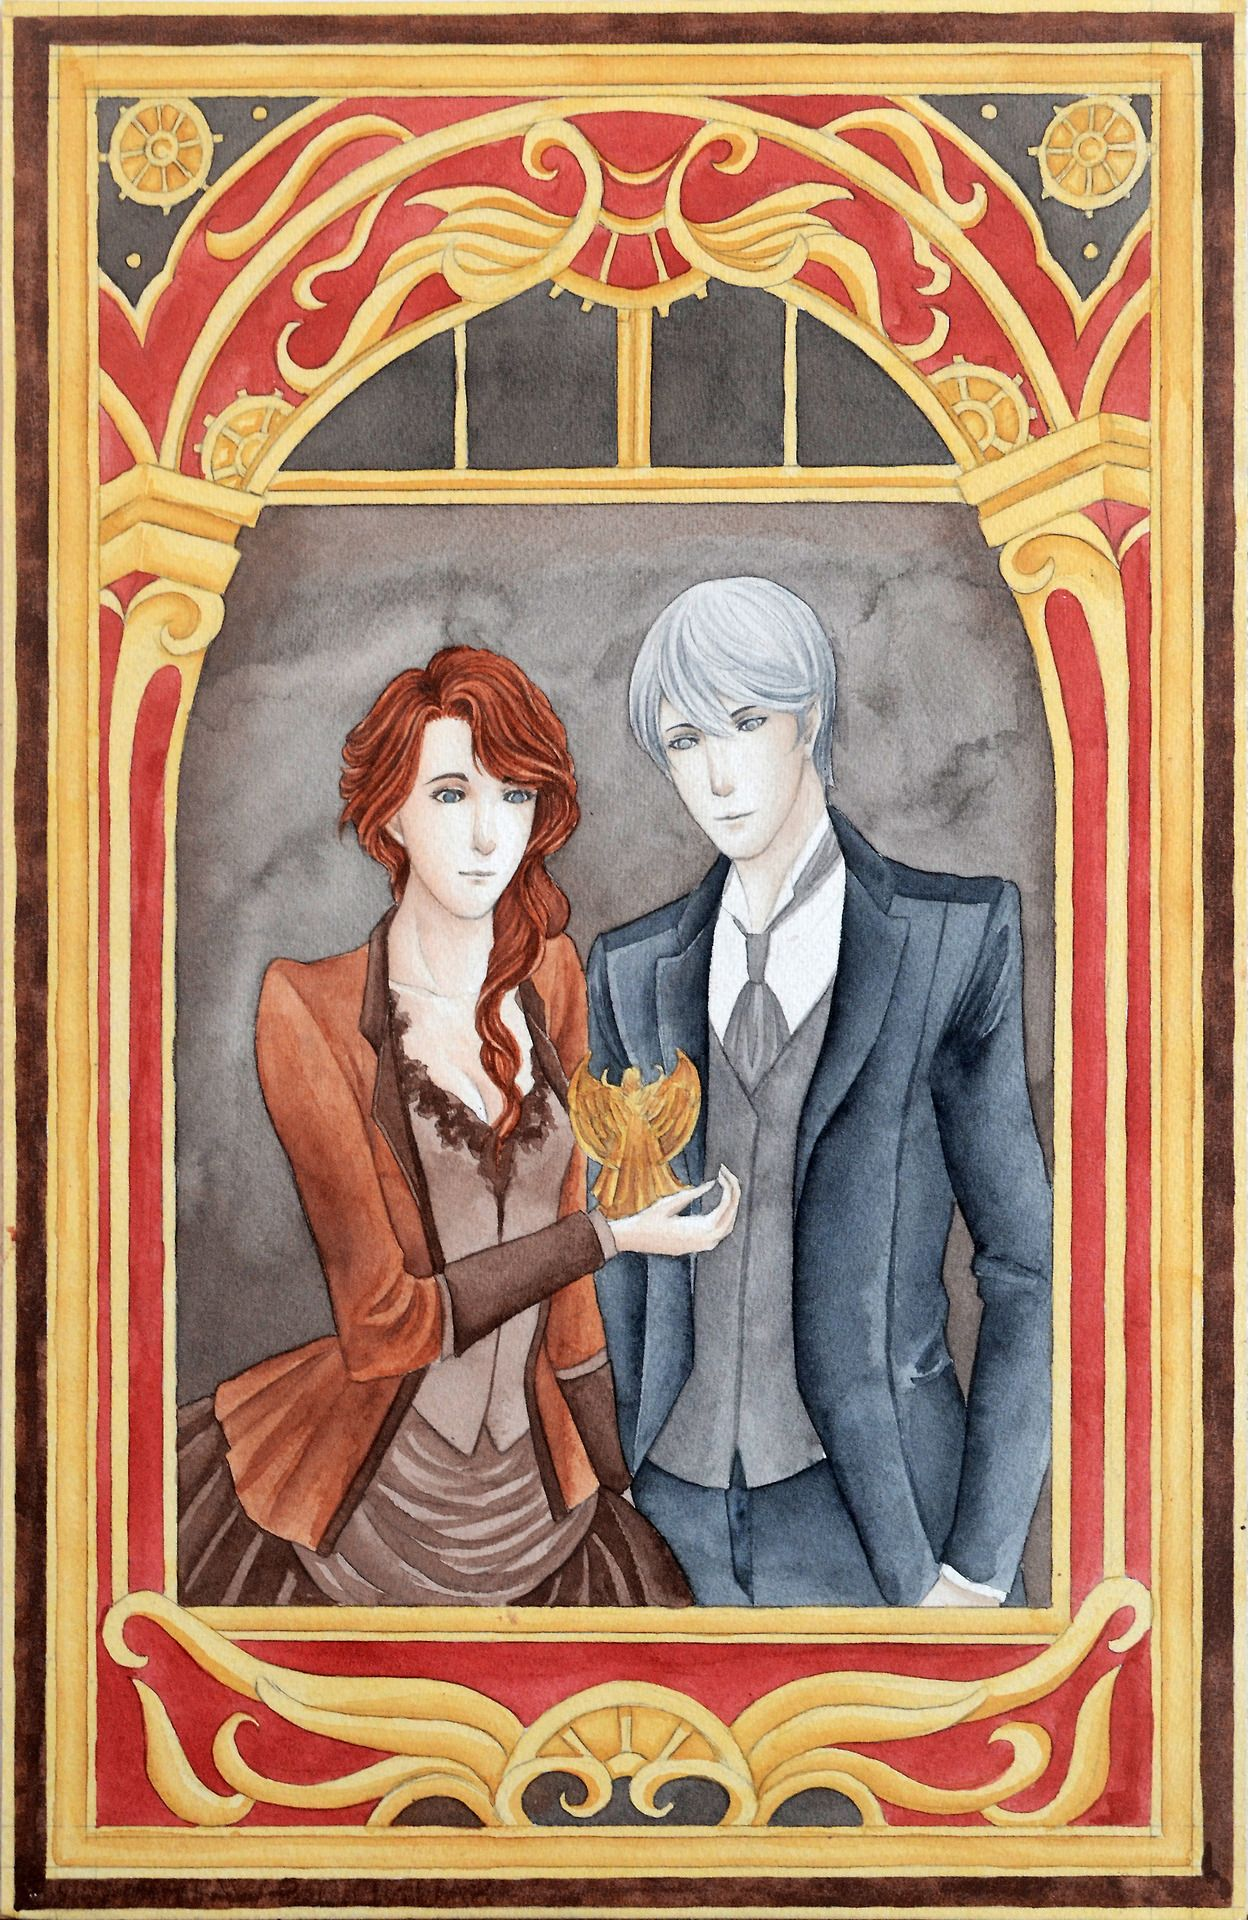 Sheehanmebaby.tumblr.com - Tessa Gray and Jem Carstairs from The Infernal Devices by Cassandra Clare